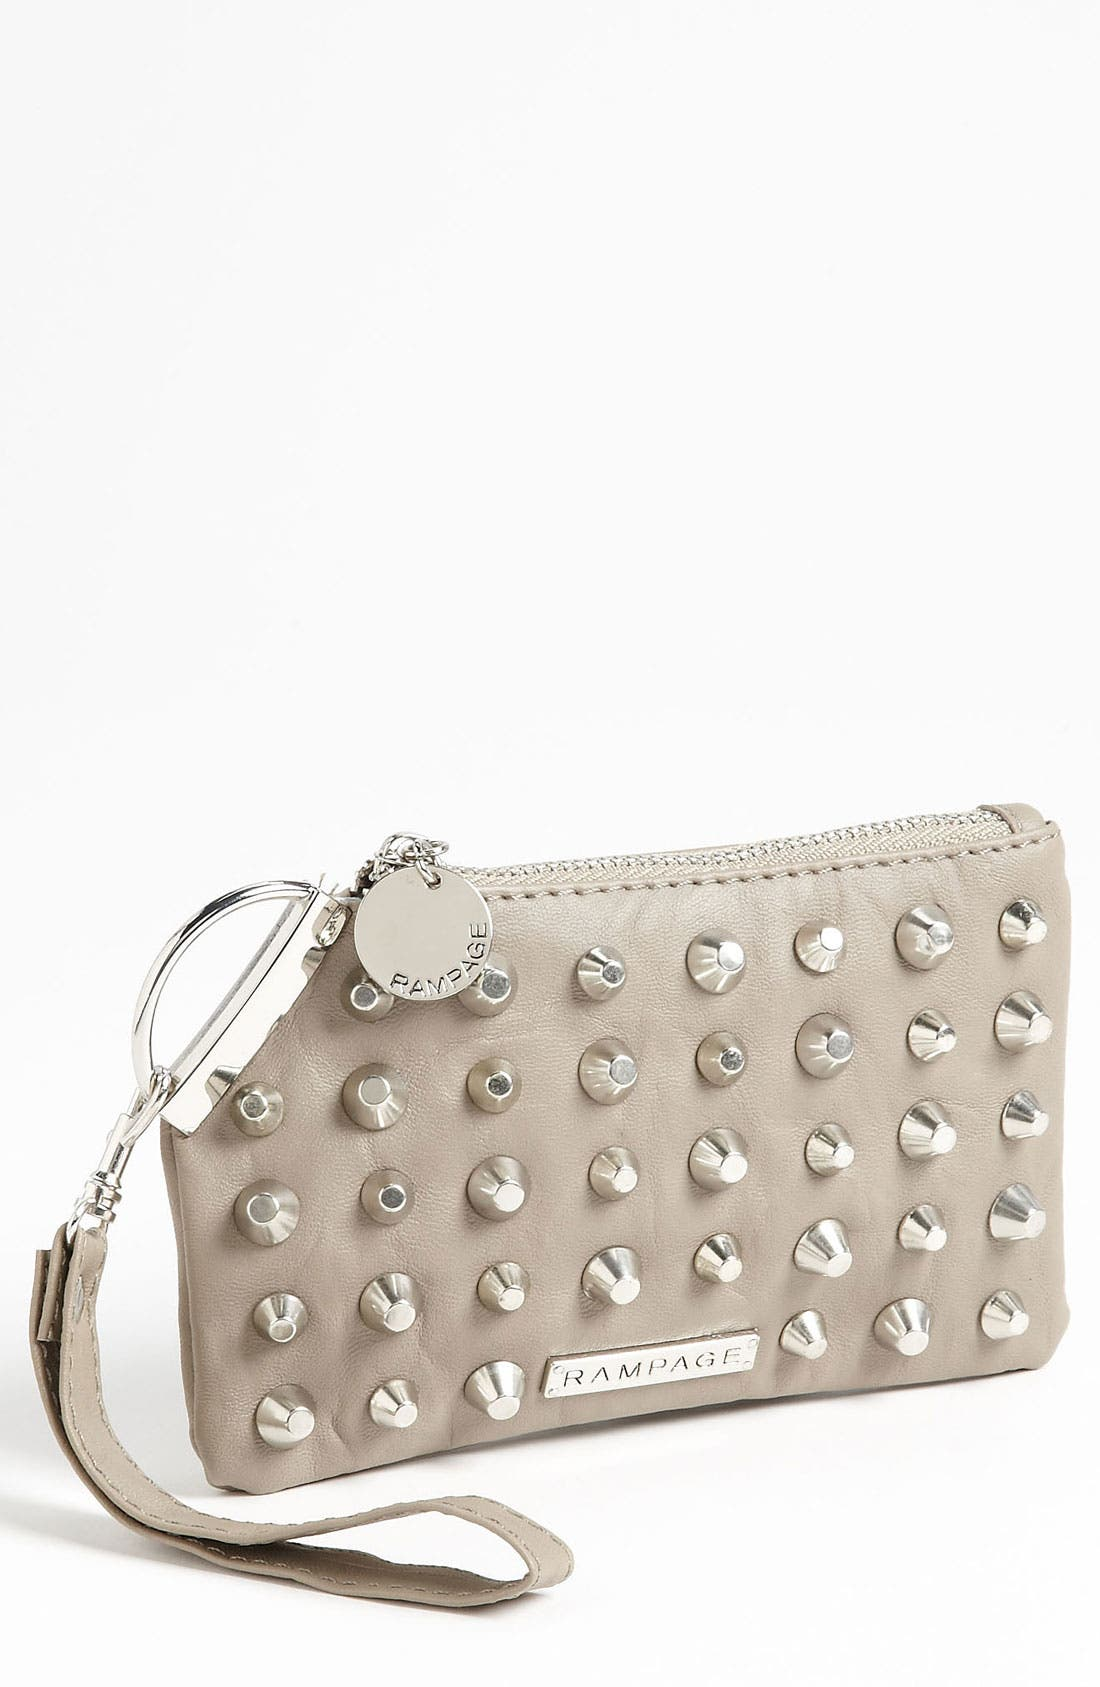 Alternate Image 1 Selected - Rampage 'Rivington' Wristlet